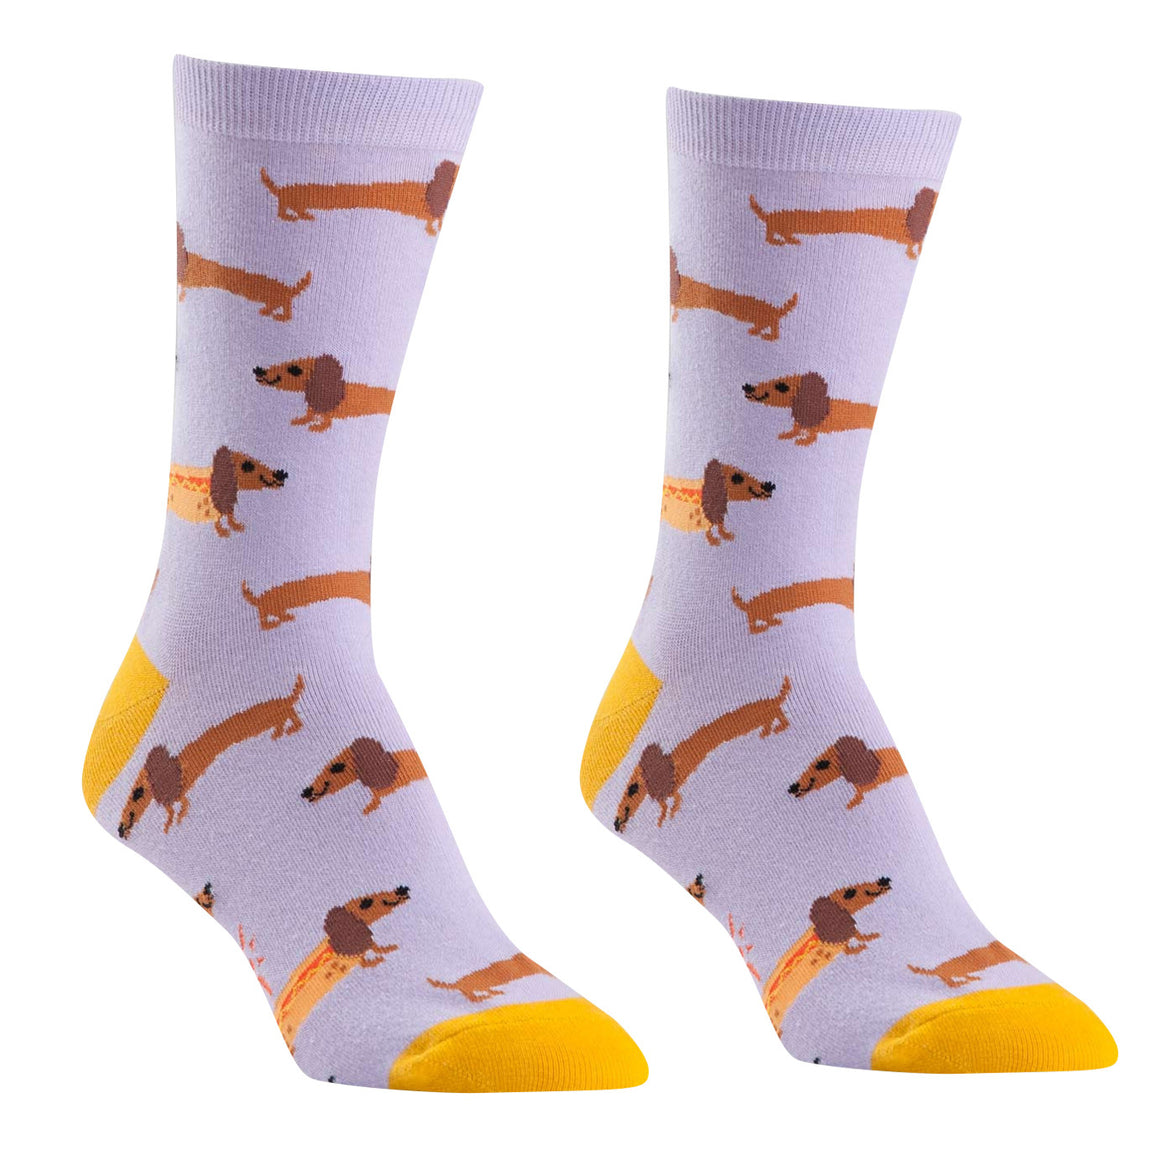 Hot Dogs Crew Socks by Sock It to Me